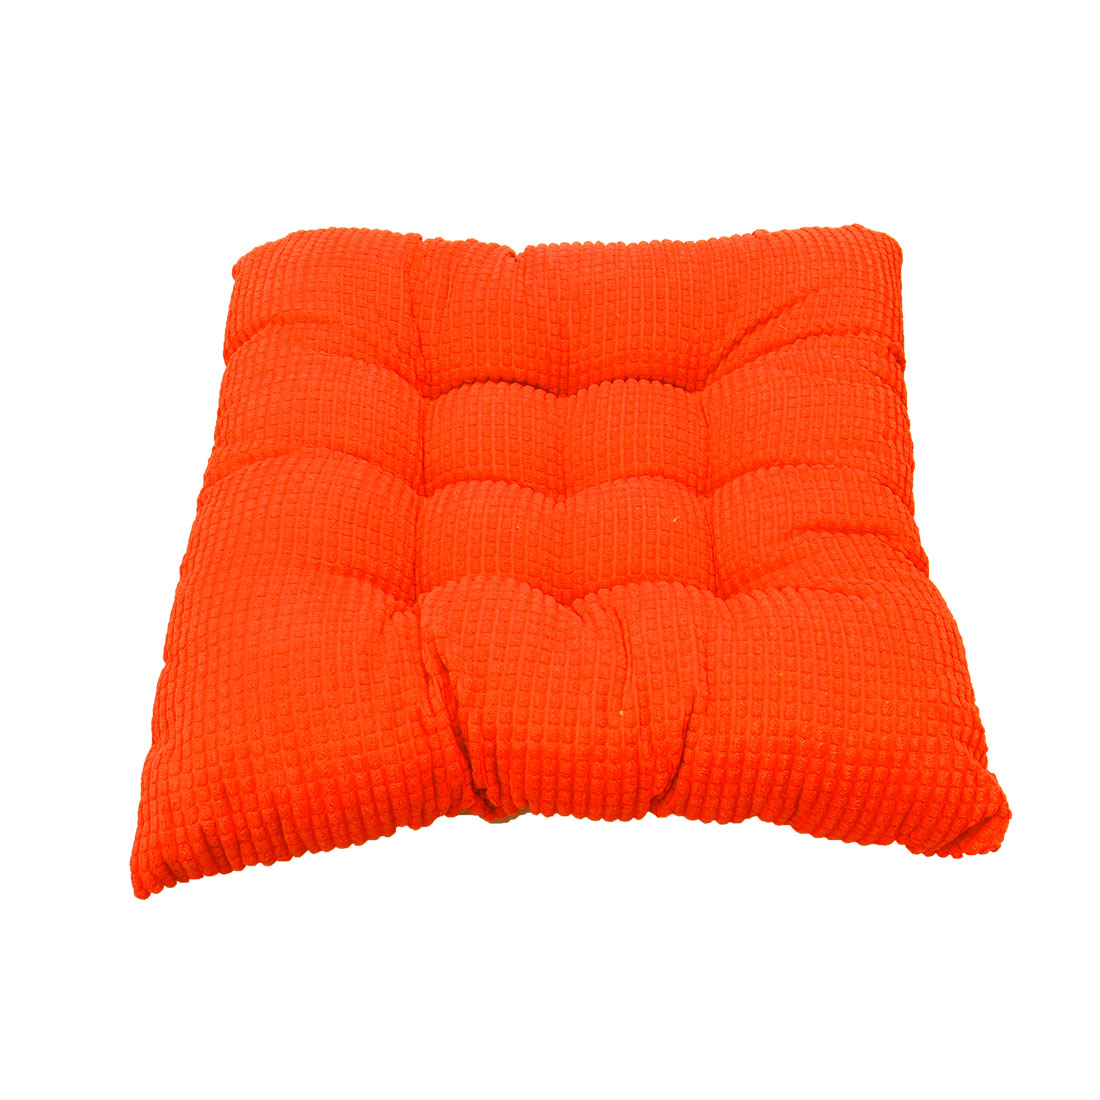 Household Office Corduroy Square Shaped Thickness Chair Cushion Vibrant orange